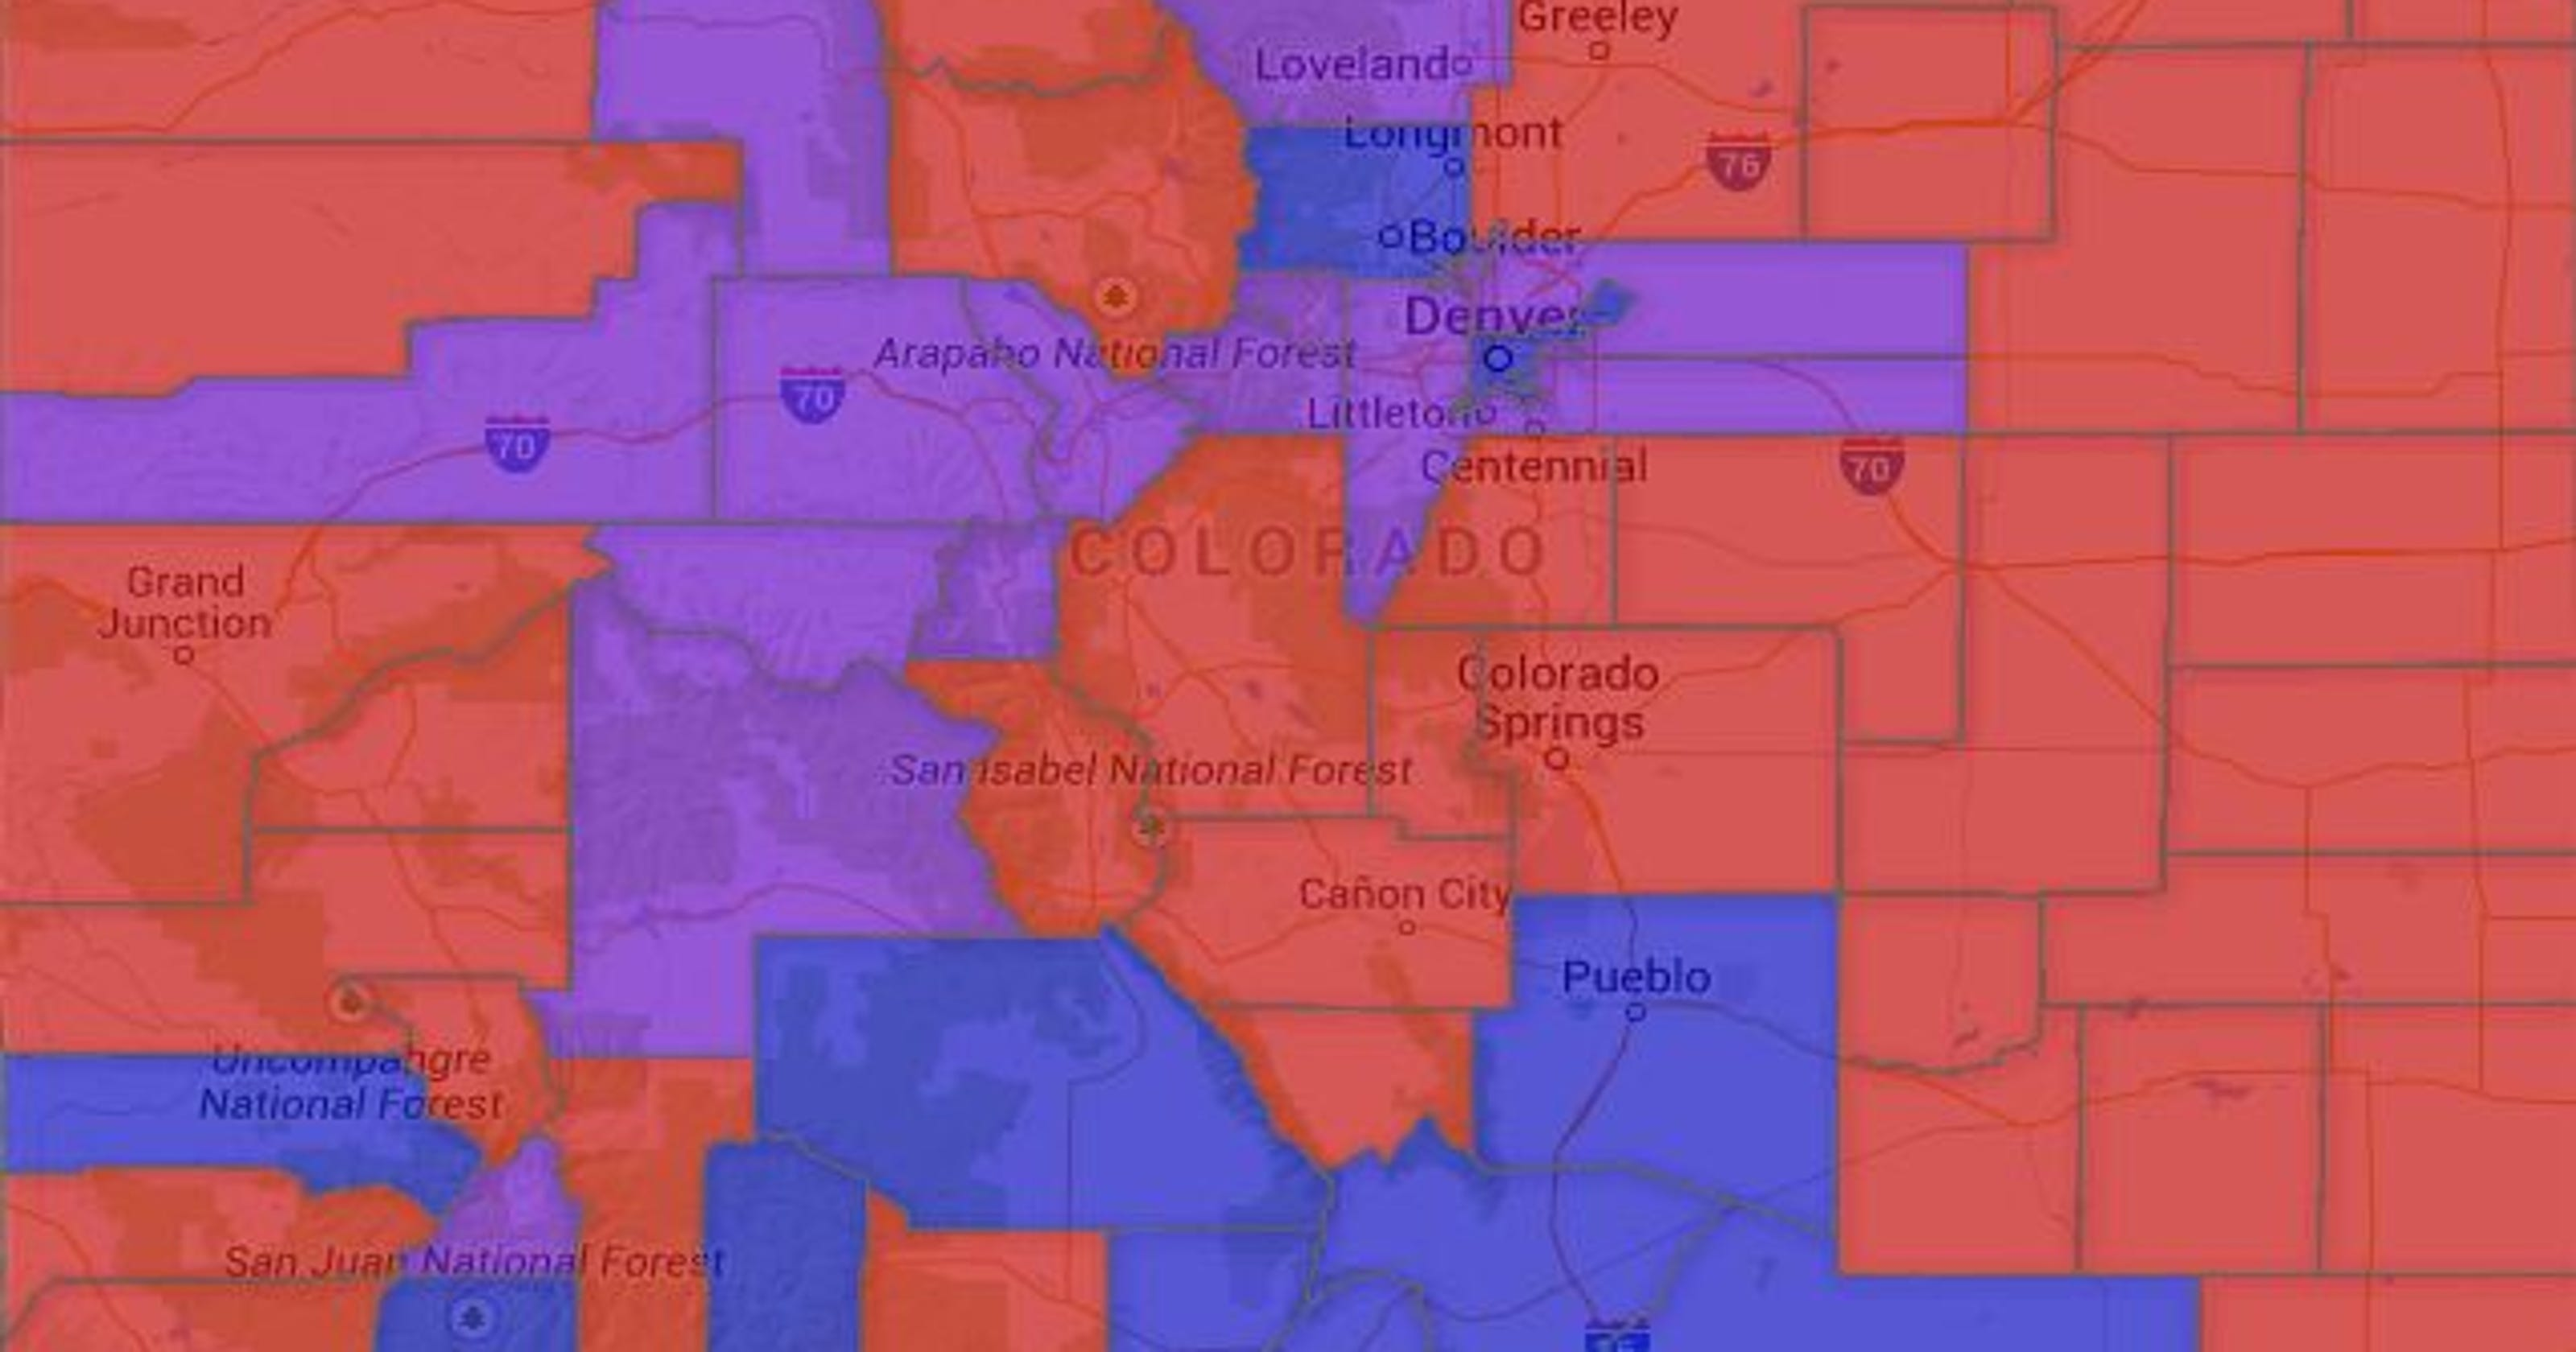 Map: Colorado Voter Party Affiliation by County